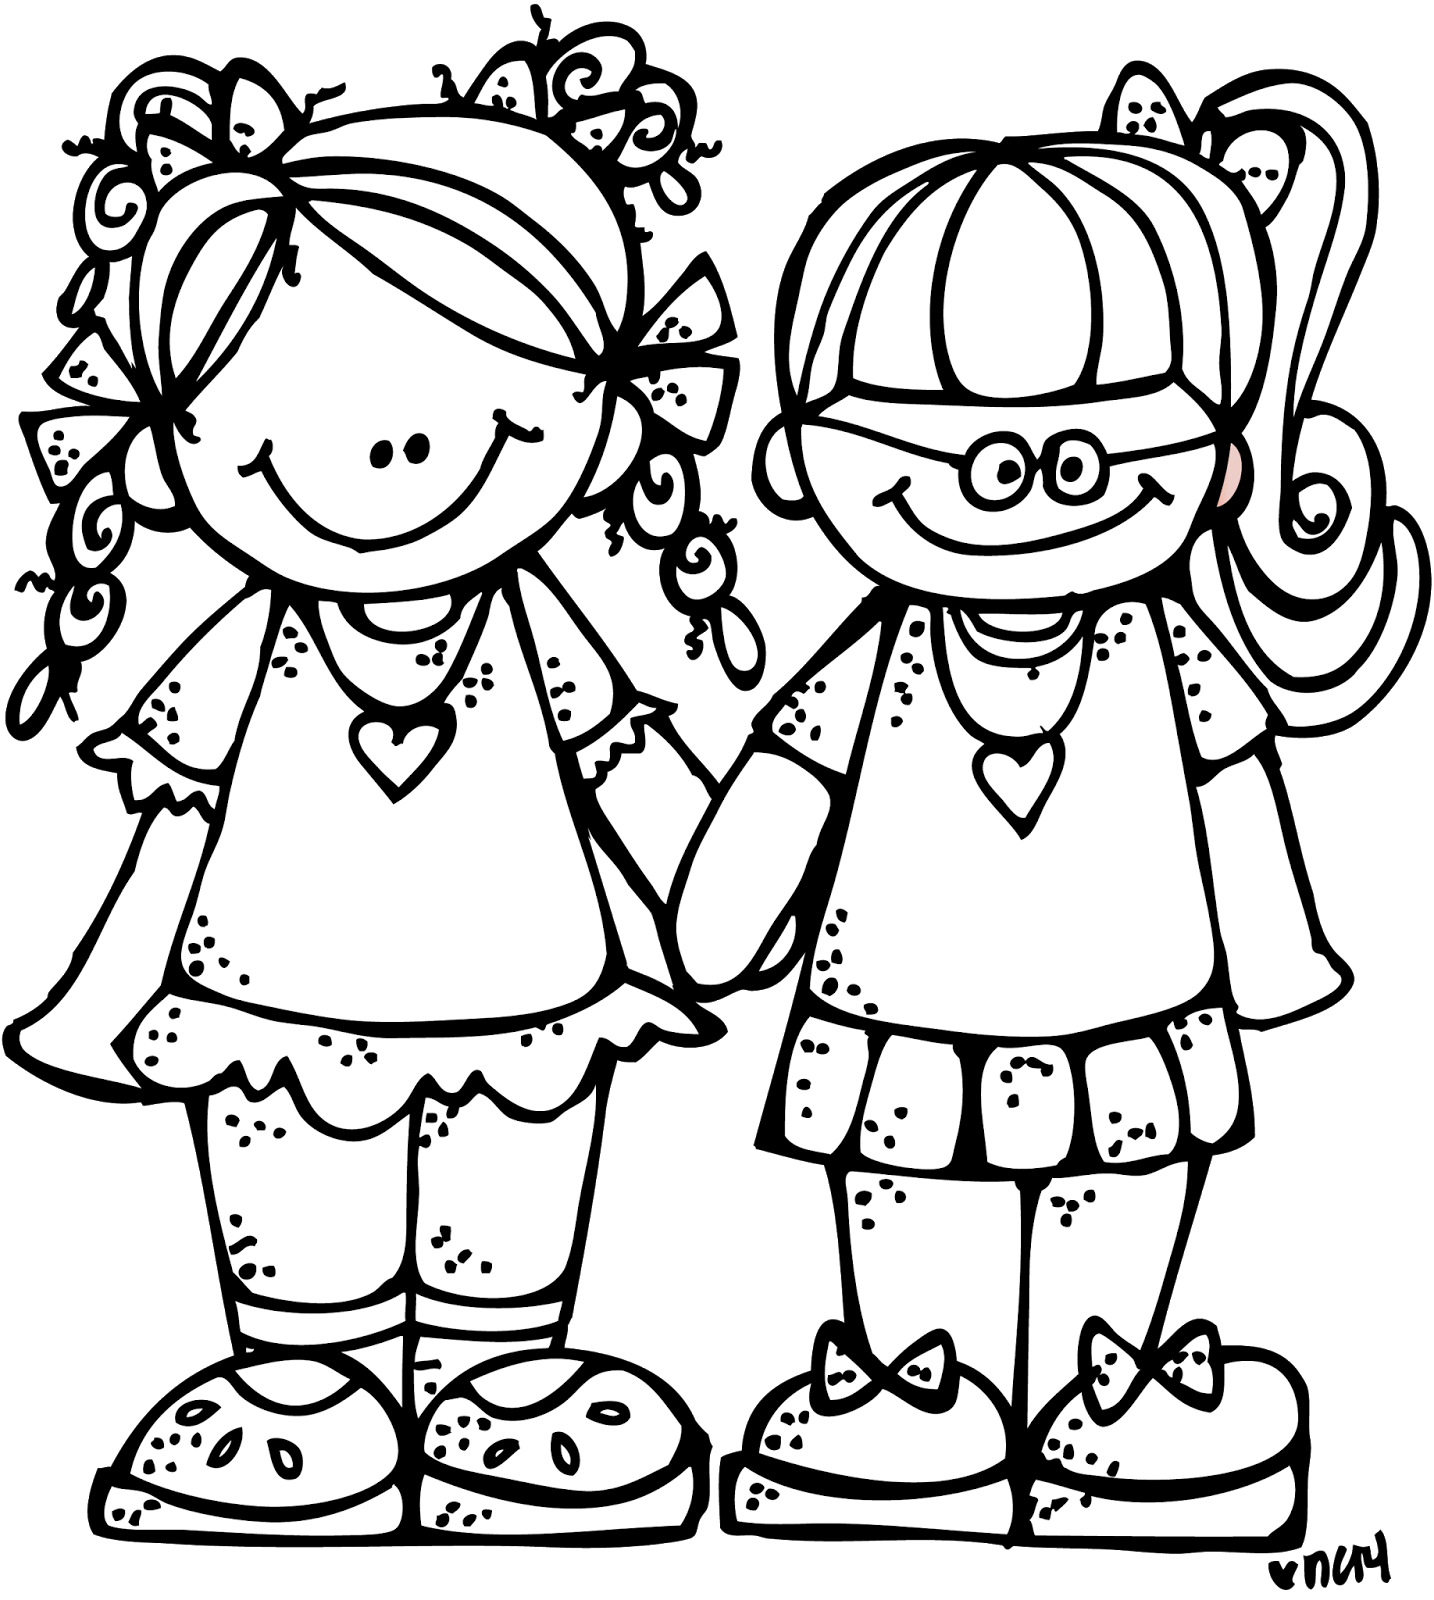 Lds clipart friend. Melonheadz freebie forever friends